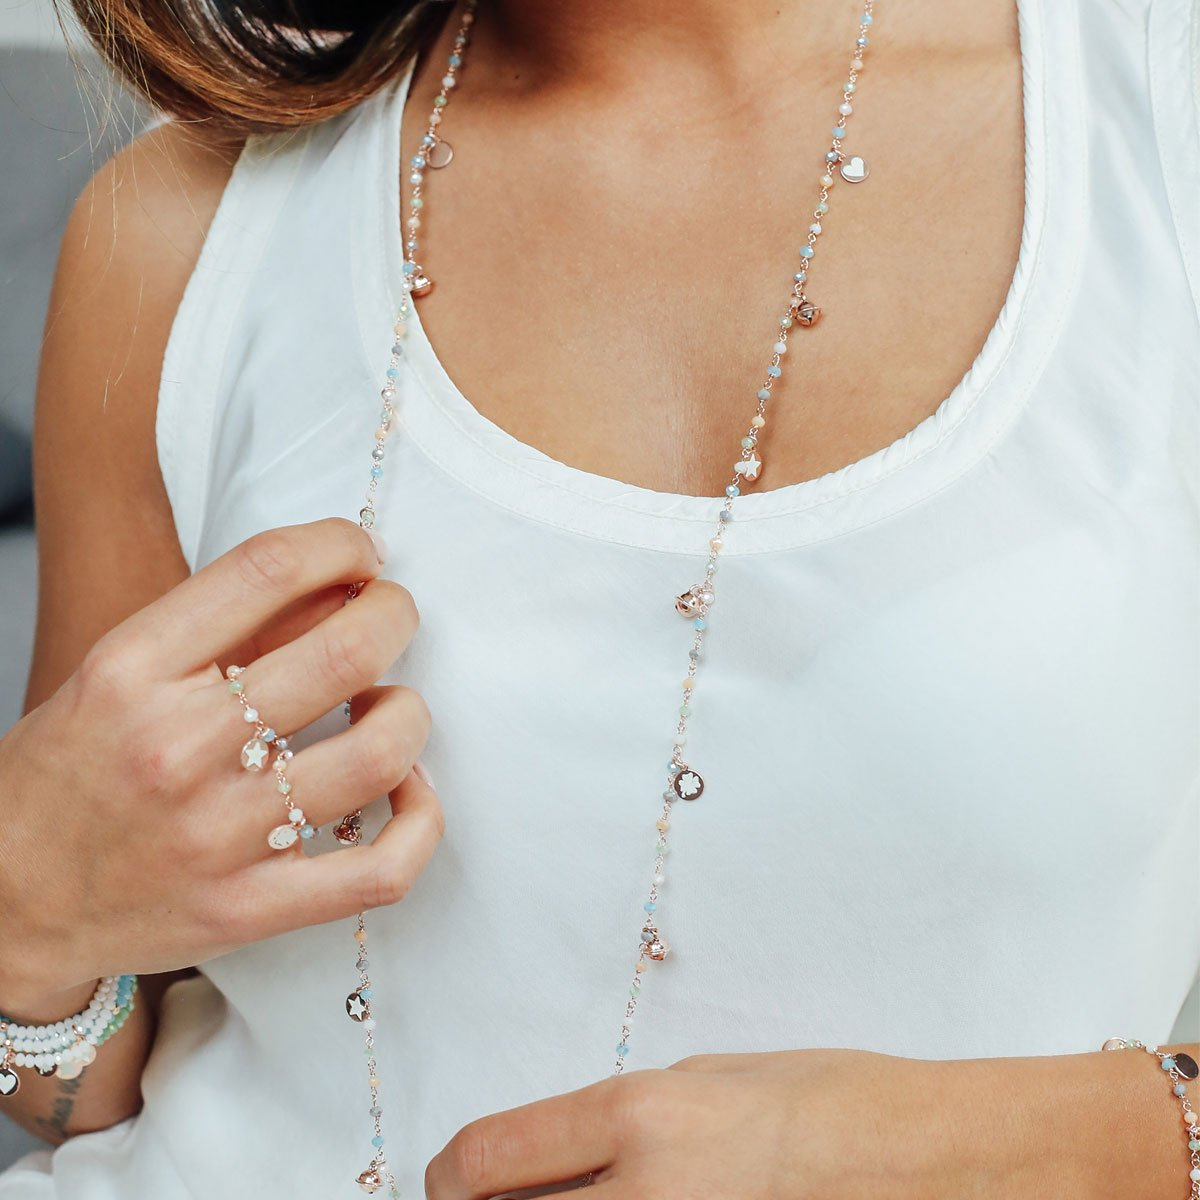 Collares - Collar Gipsy Chic Vol. 2 - 2 | Rue des Mille